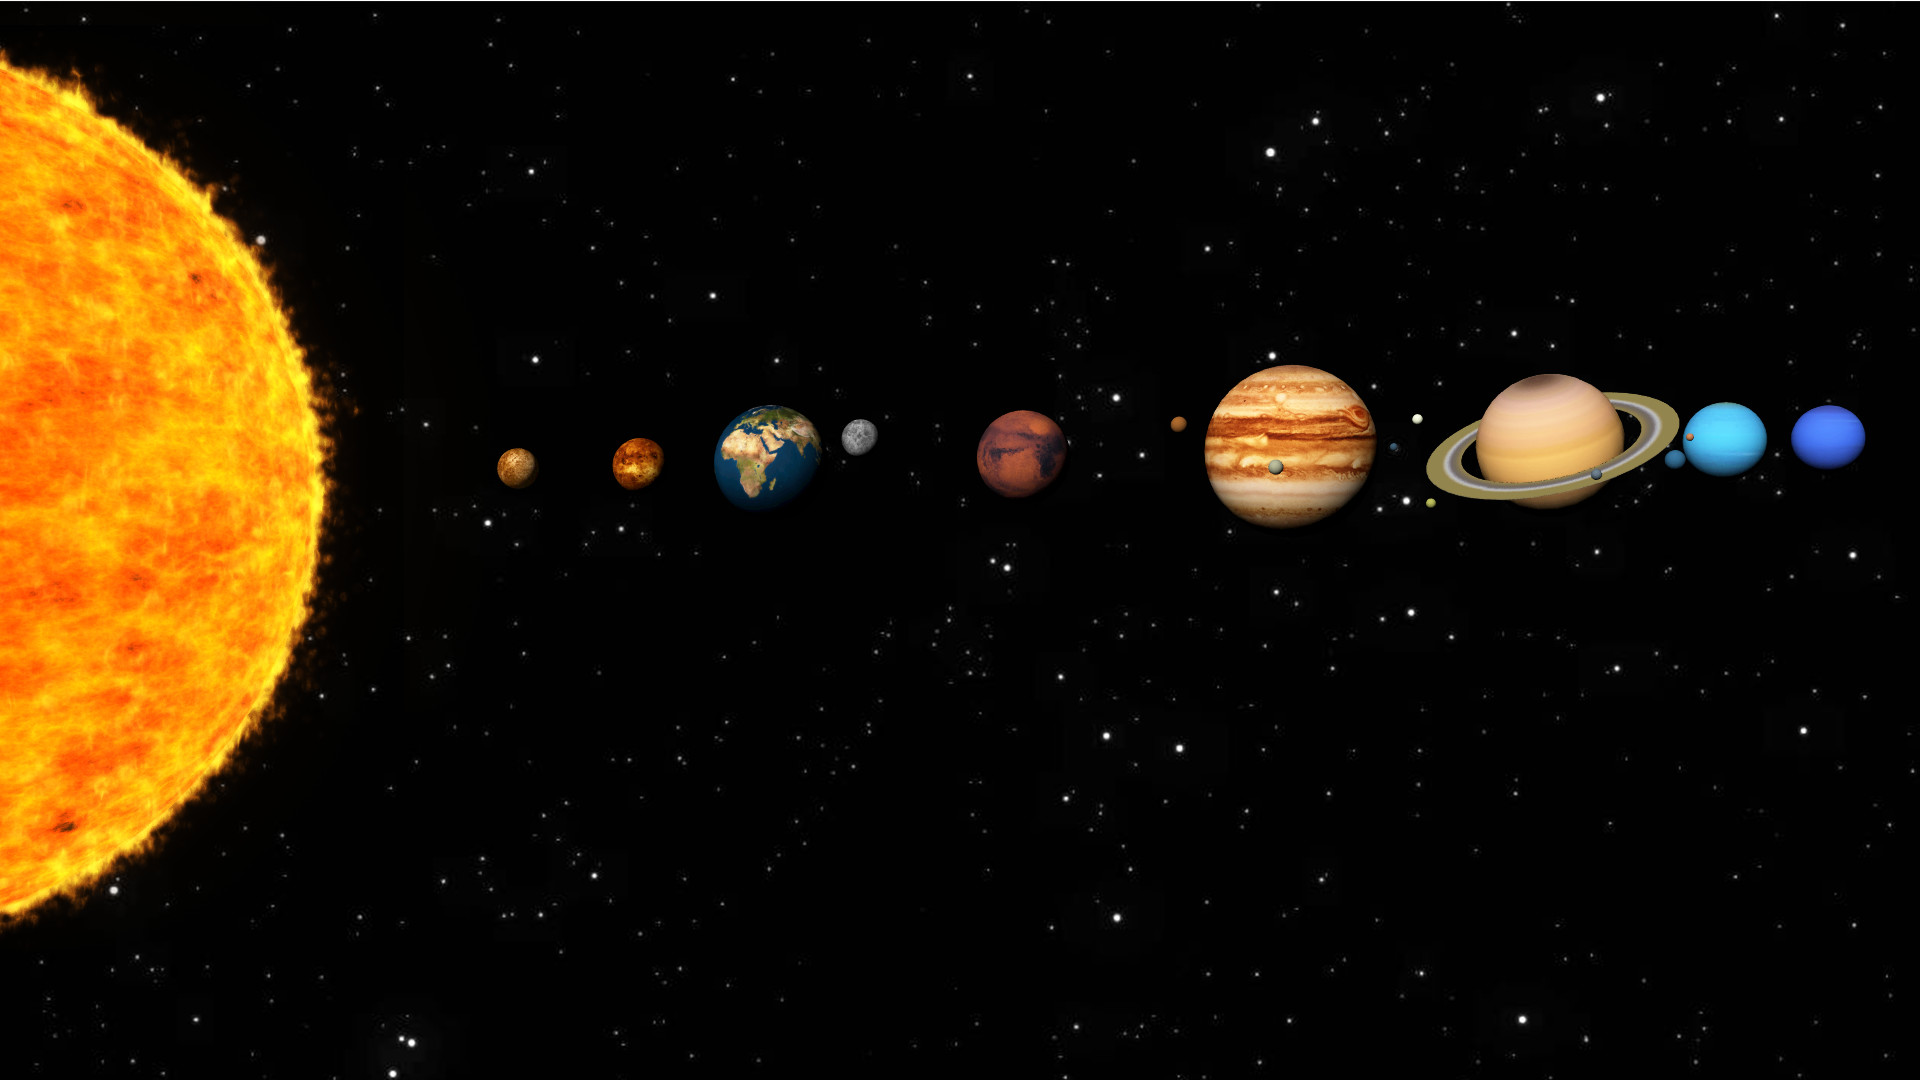 solar system images - HD1920×1080